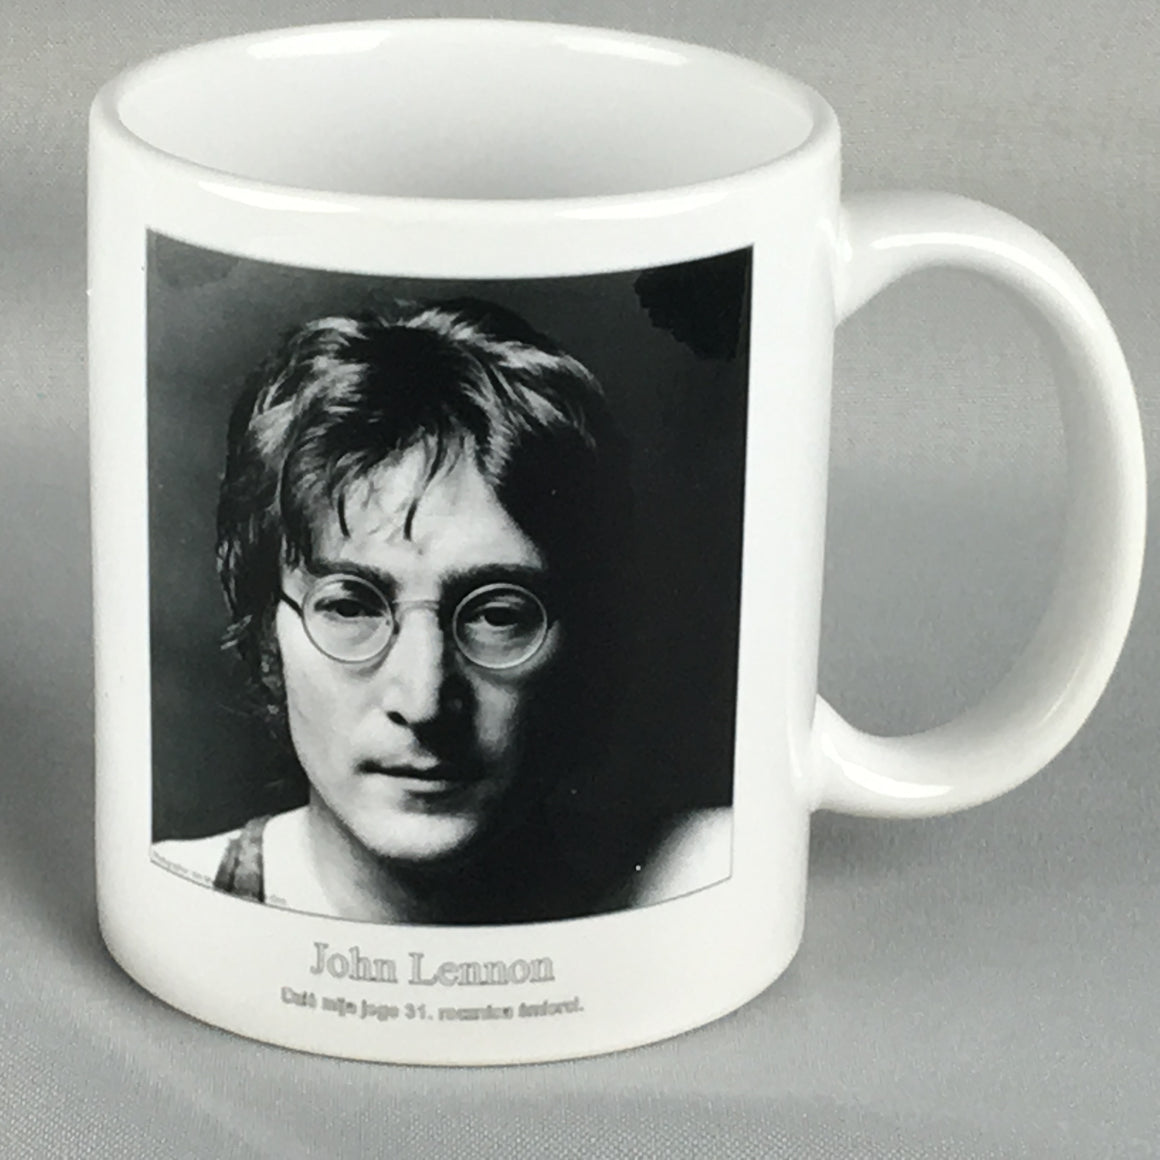 John Lennon Coffee Mug - Beautiful, Unique Gift!